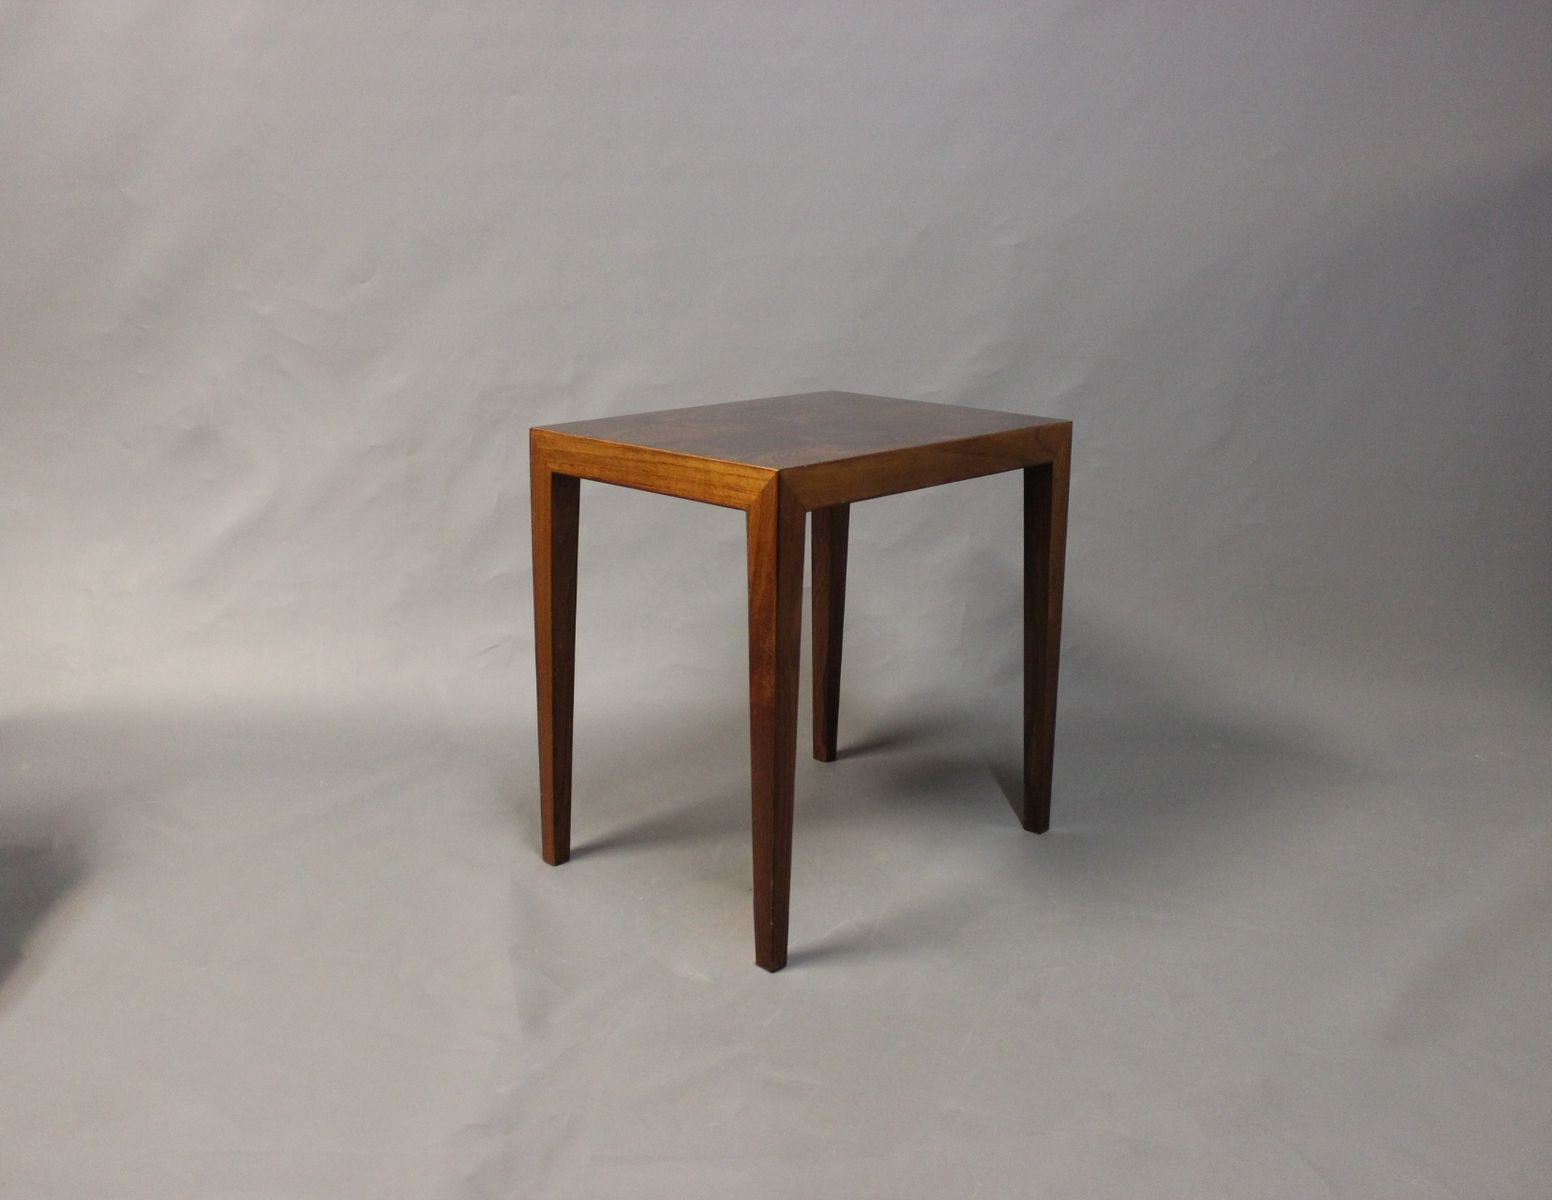 Charming Small Danish Side Table By Severin Hansen For Haslev, 1960s